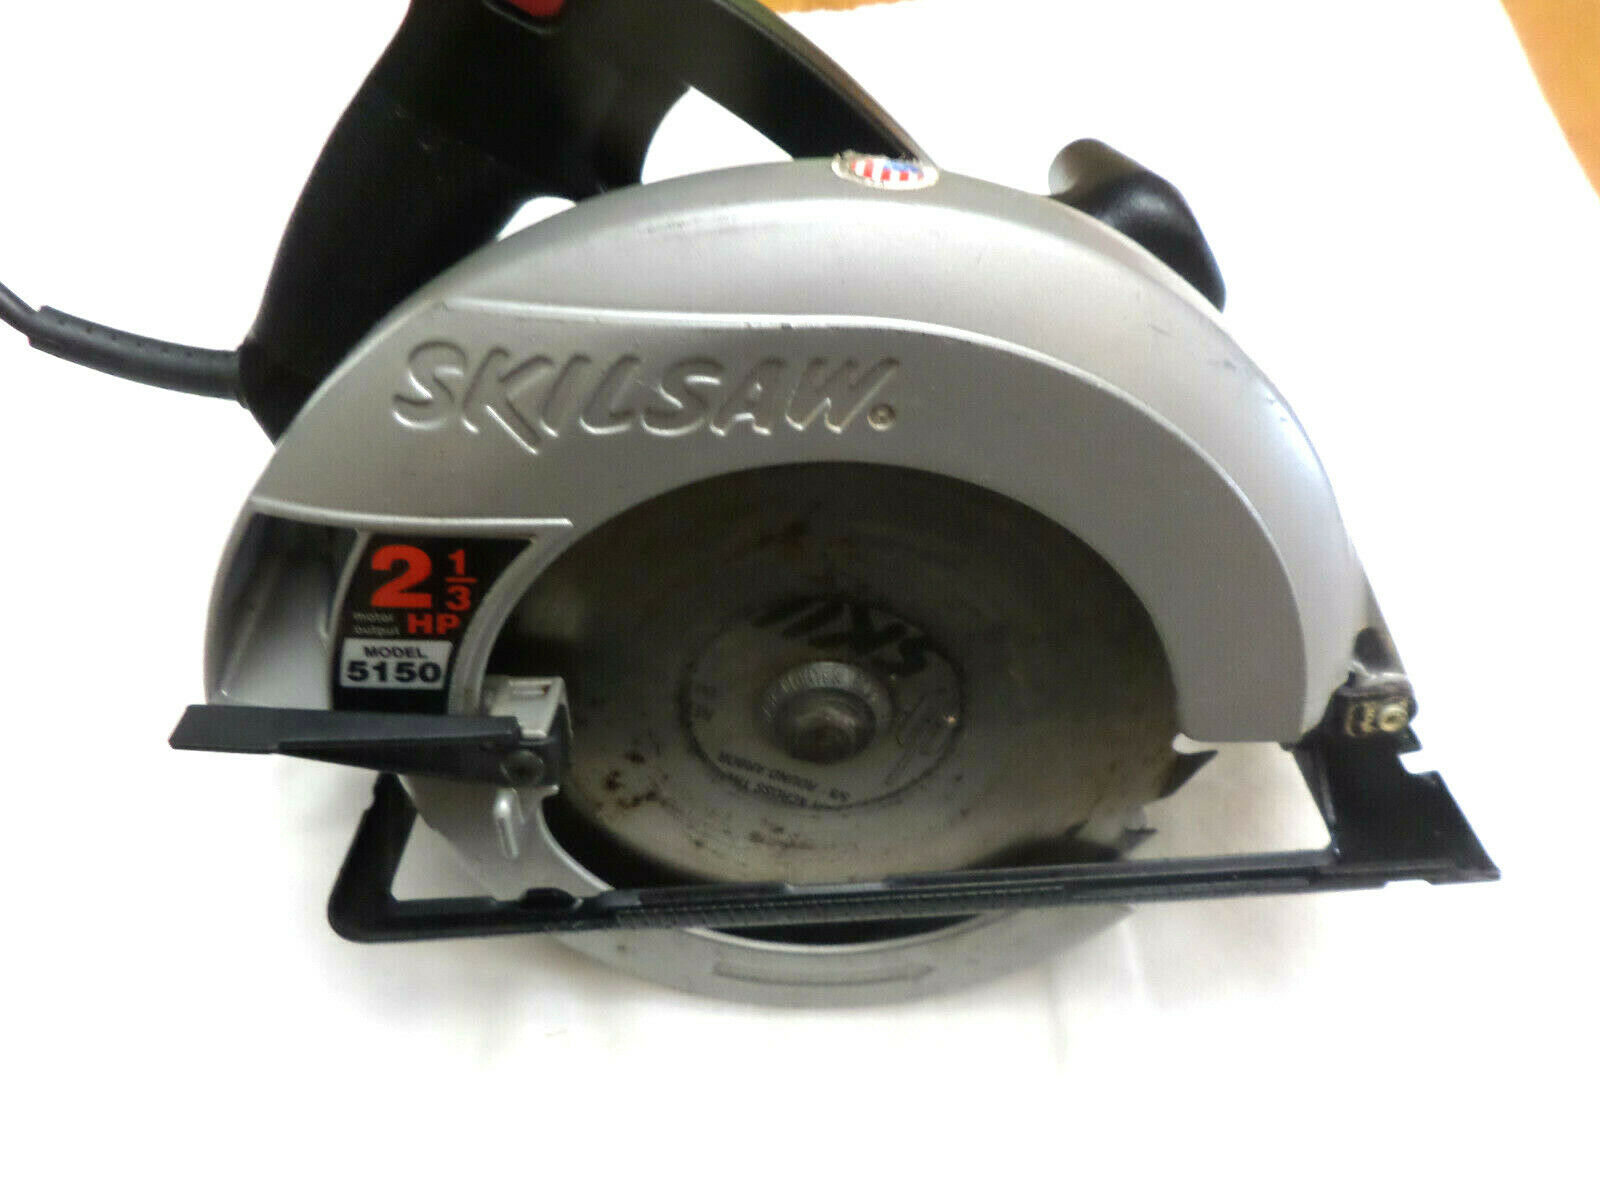 Photo Pre-owned & Tested SKILSAW #5150 2-1/3 Hp 10 amp 7-1/4